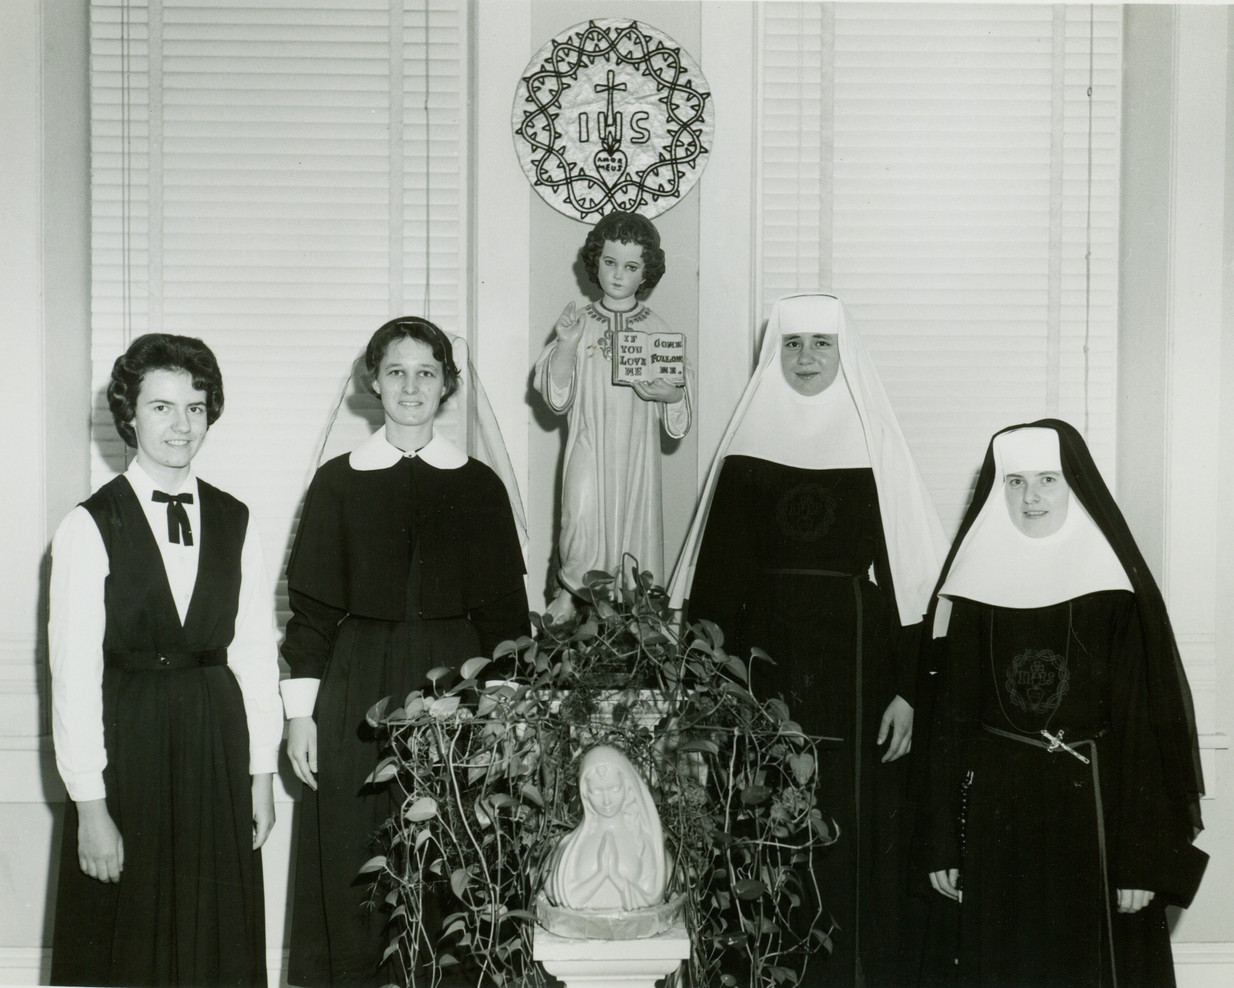 Before the 1960s, a young woman who wanted to enter religious life began as a candidate (left). After a few months of study and prayer, she became a postulant. After a year or so, she became a novice and after two or more years, she professed first, or temporary, vows. After three or more years, a woman then made final vows.